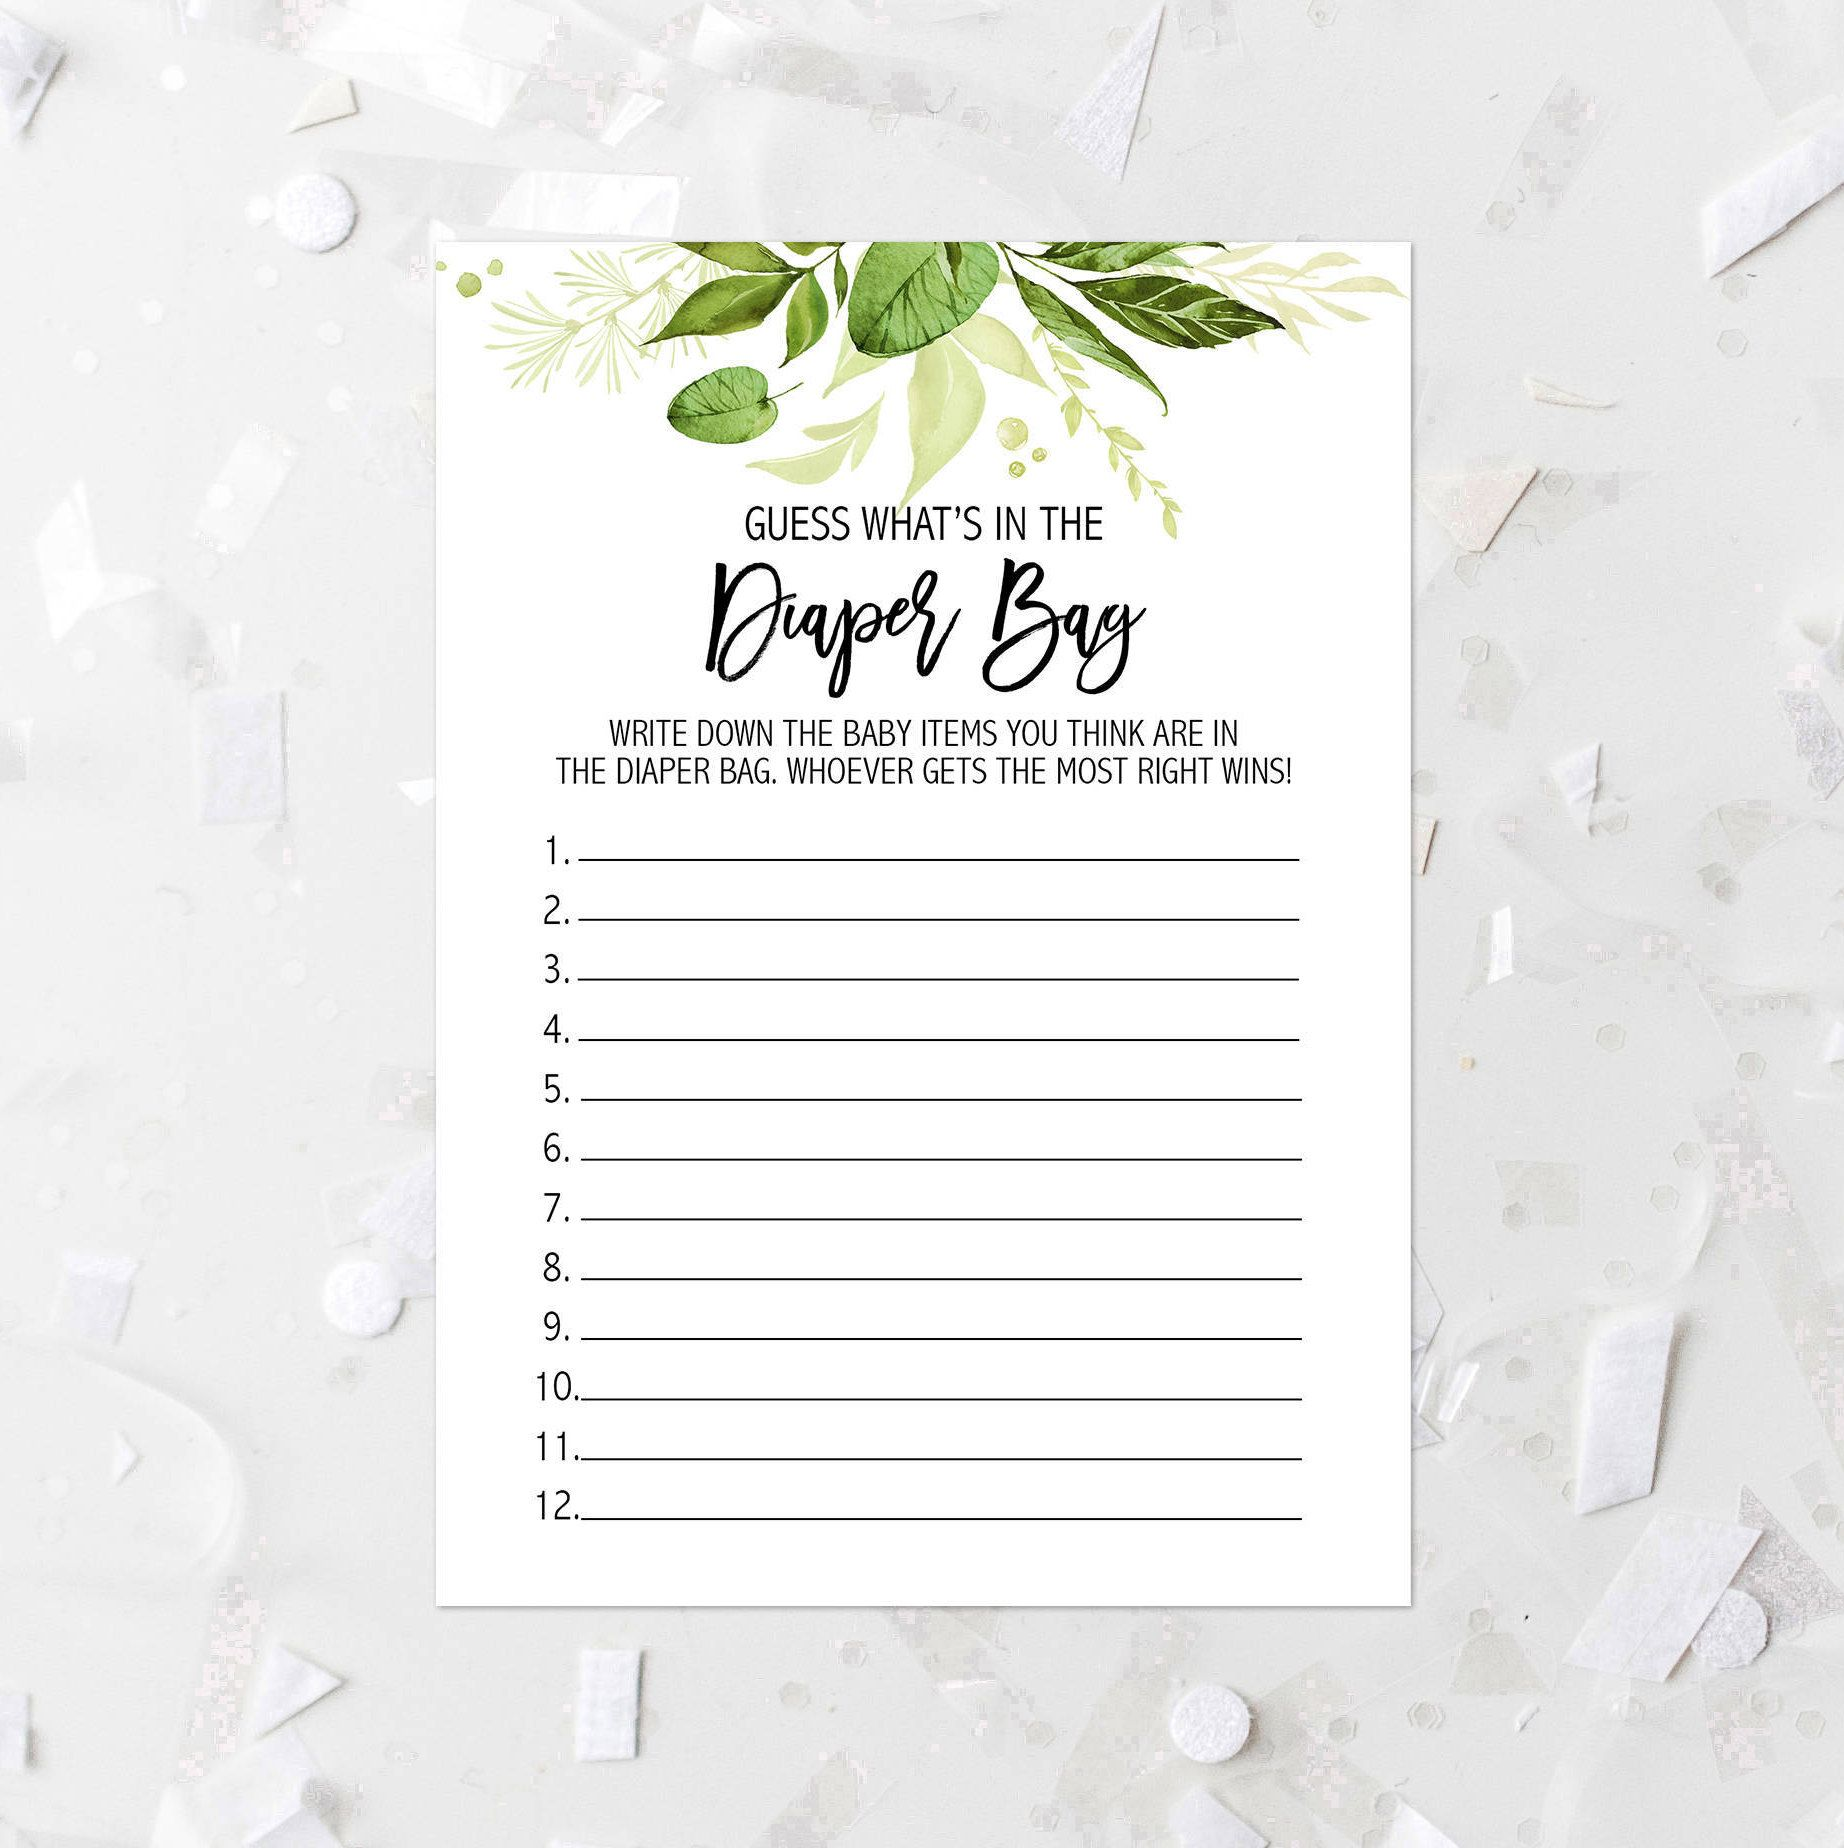 Greenery Guess Whatu0027s In The Diaper Bag Baby Shower Game Printable Green  Leafy Baby Shower Guessing Games Botanical Baby Shower Activity 263 By ...